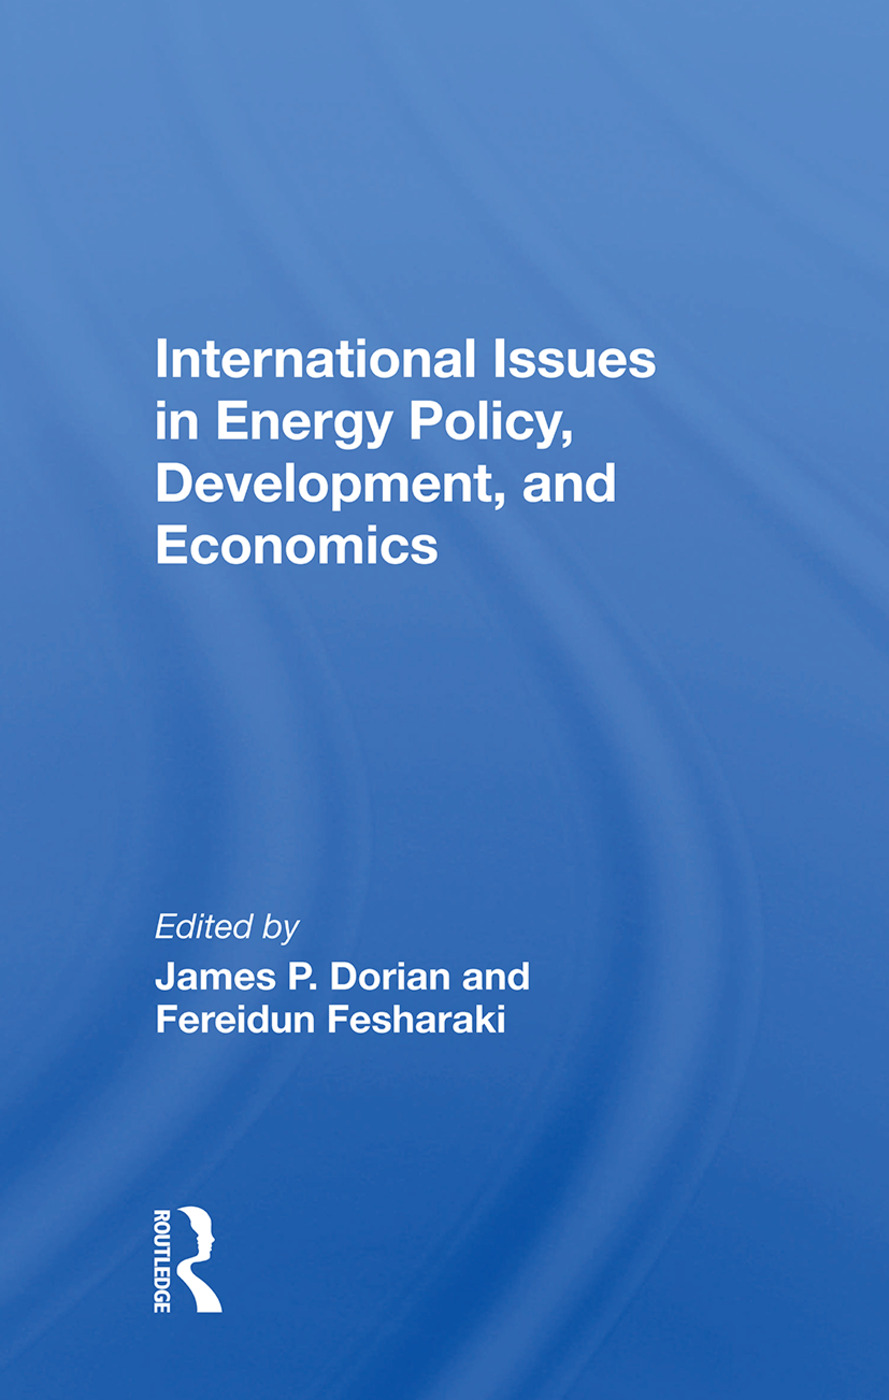 International Issues In Energy Policy, Development, And Economics book cover